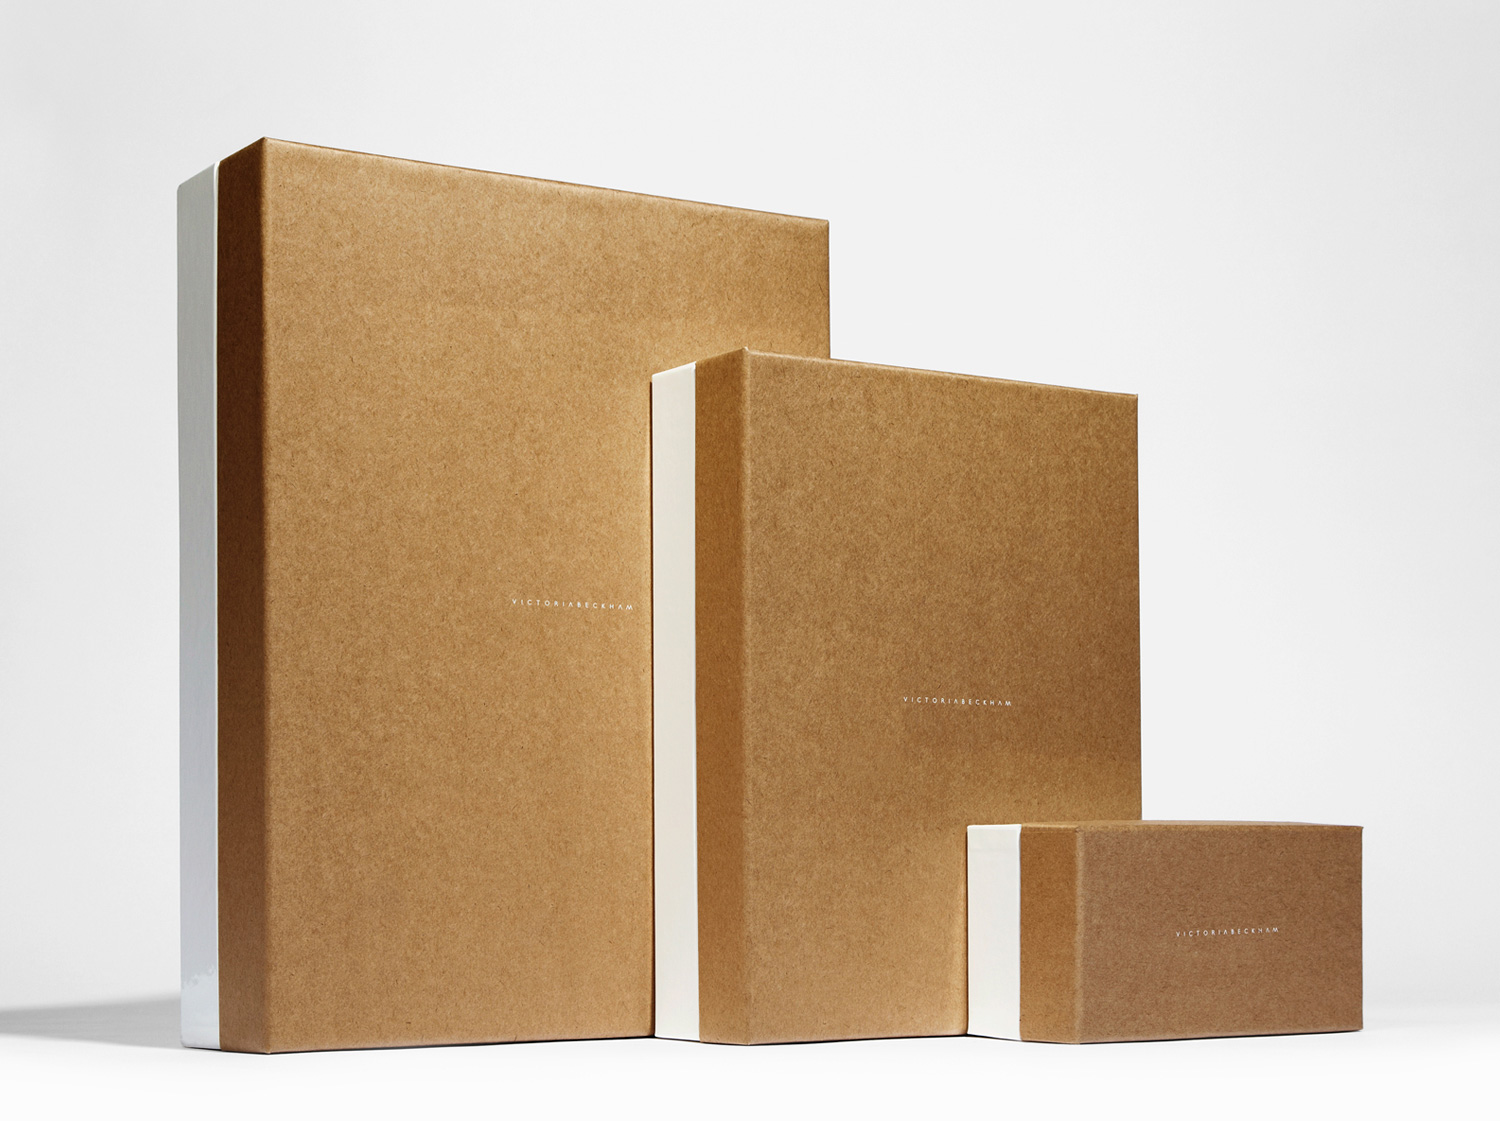 Progress Packaging Victoria Beckham Luxury Fashion Boxes Range Kraft Paper Contrast